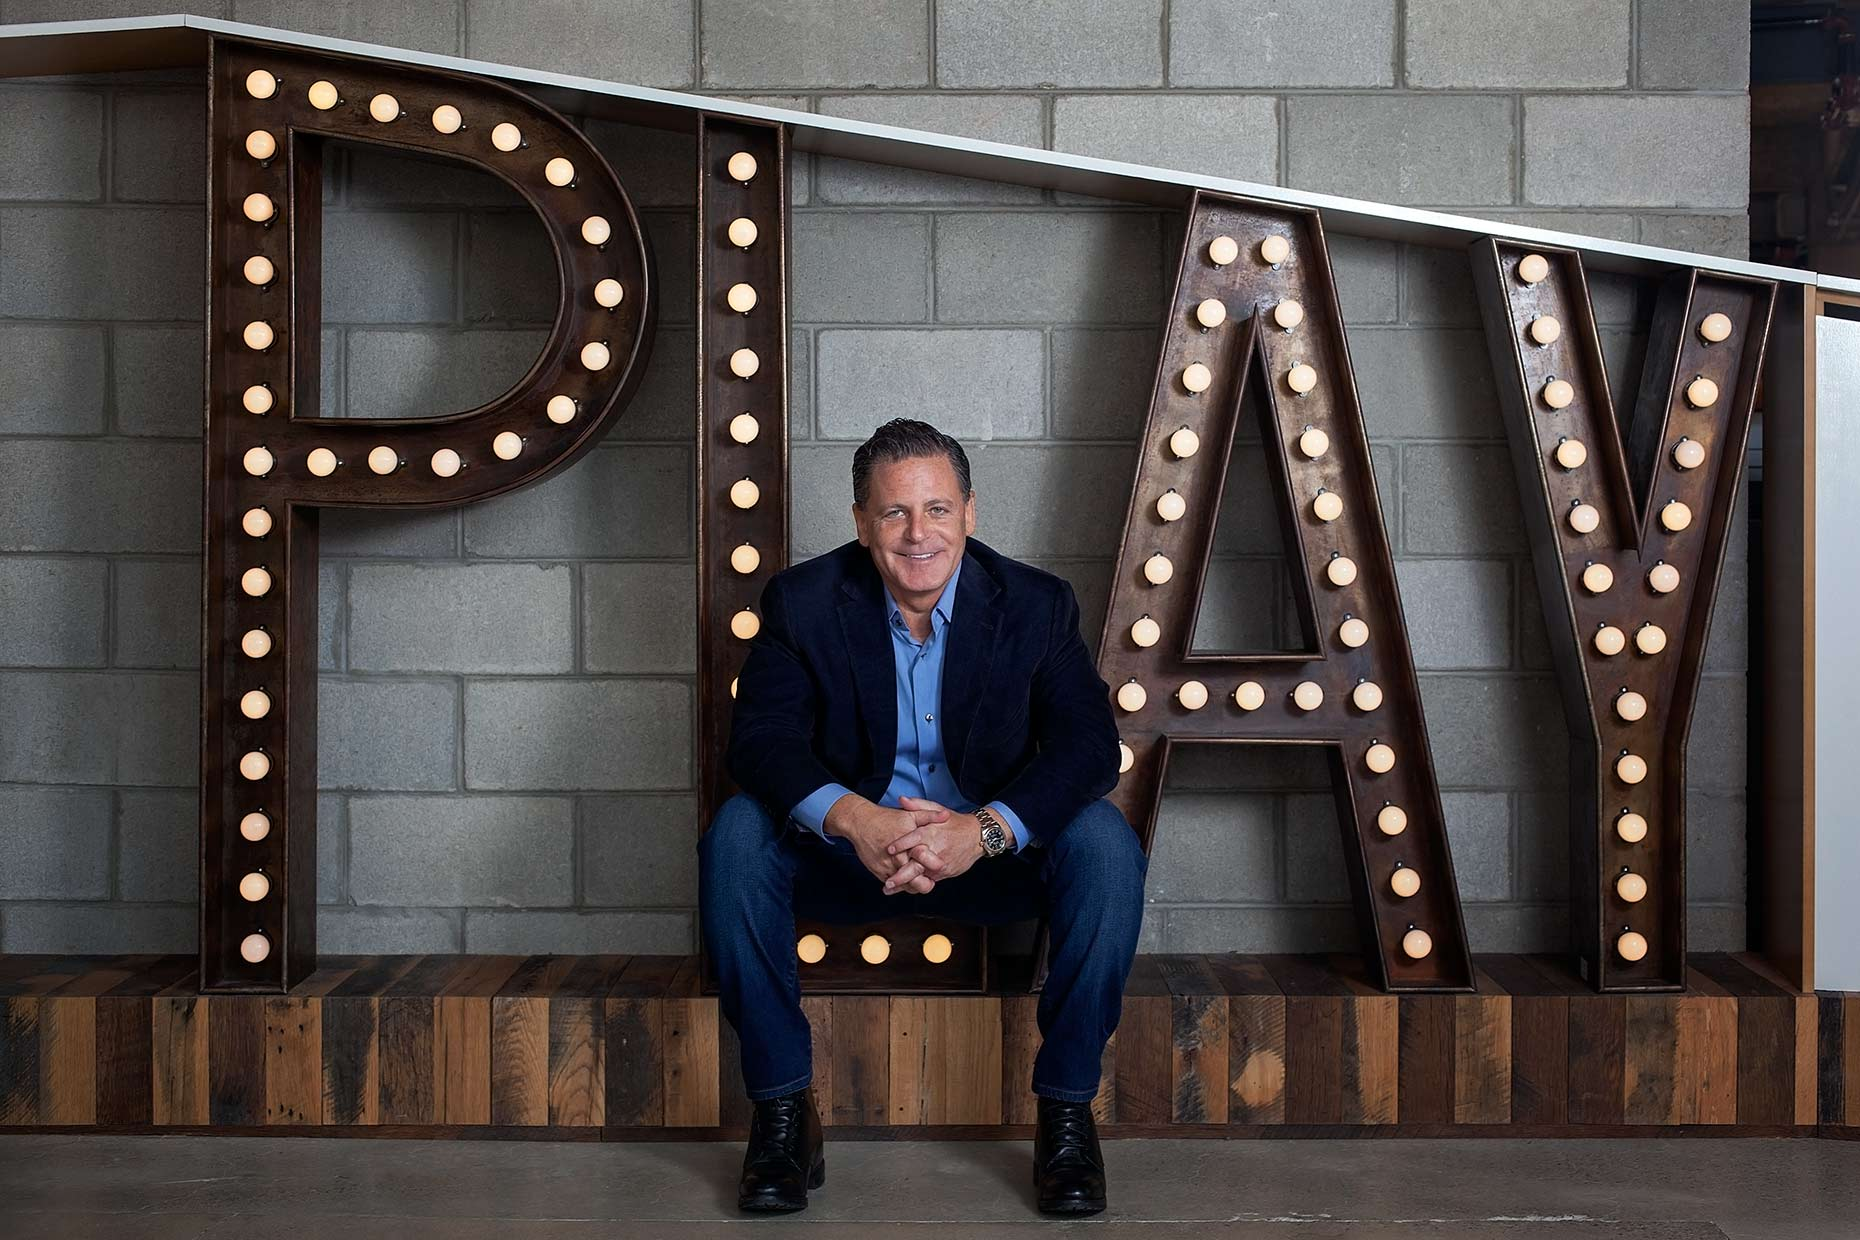 Detroit Editorial Portrait Photographer Dan Gilbert, chairman and founder of Rock Ventures and Quicken Loans Inc